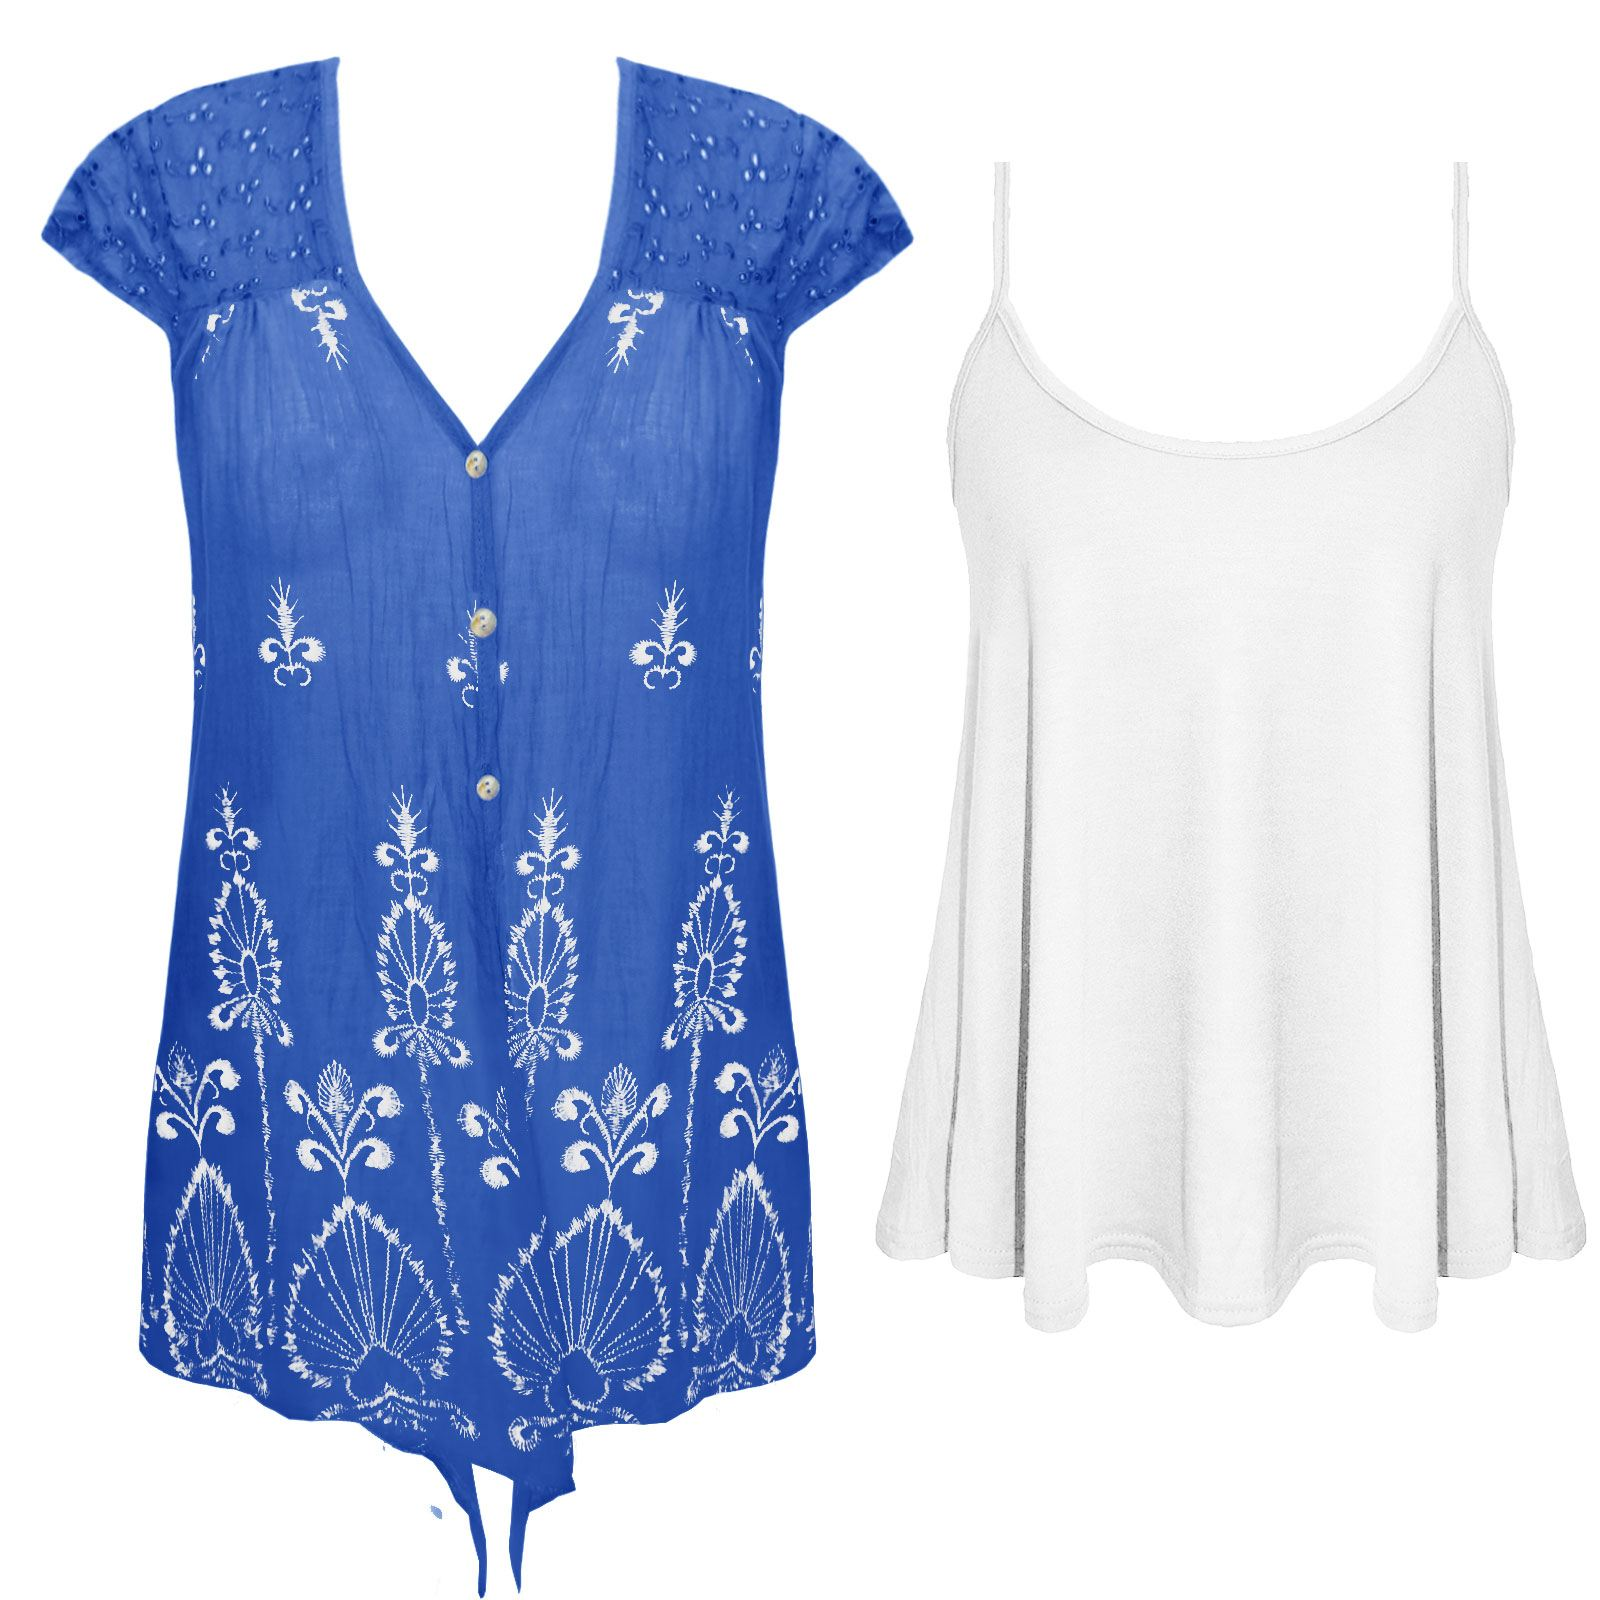 Shop for Baggy Women's Clothing, shirts, hoodies, and pajamas with thousands of designs to choose from and high quality printing.